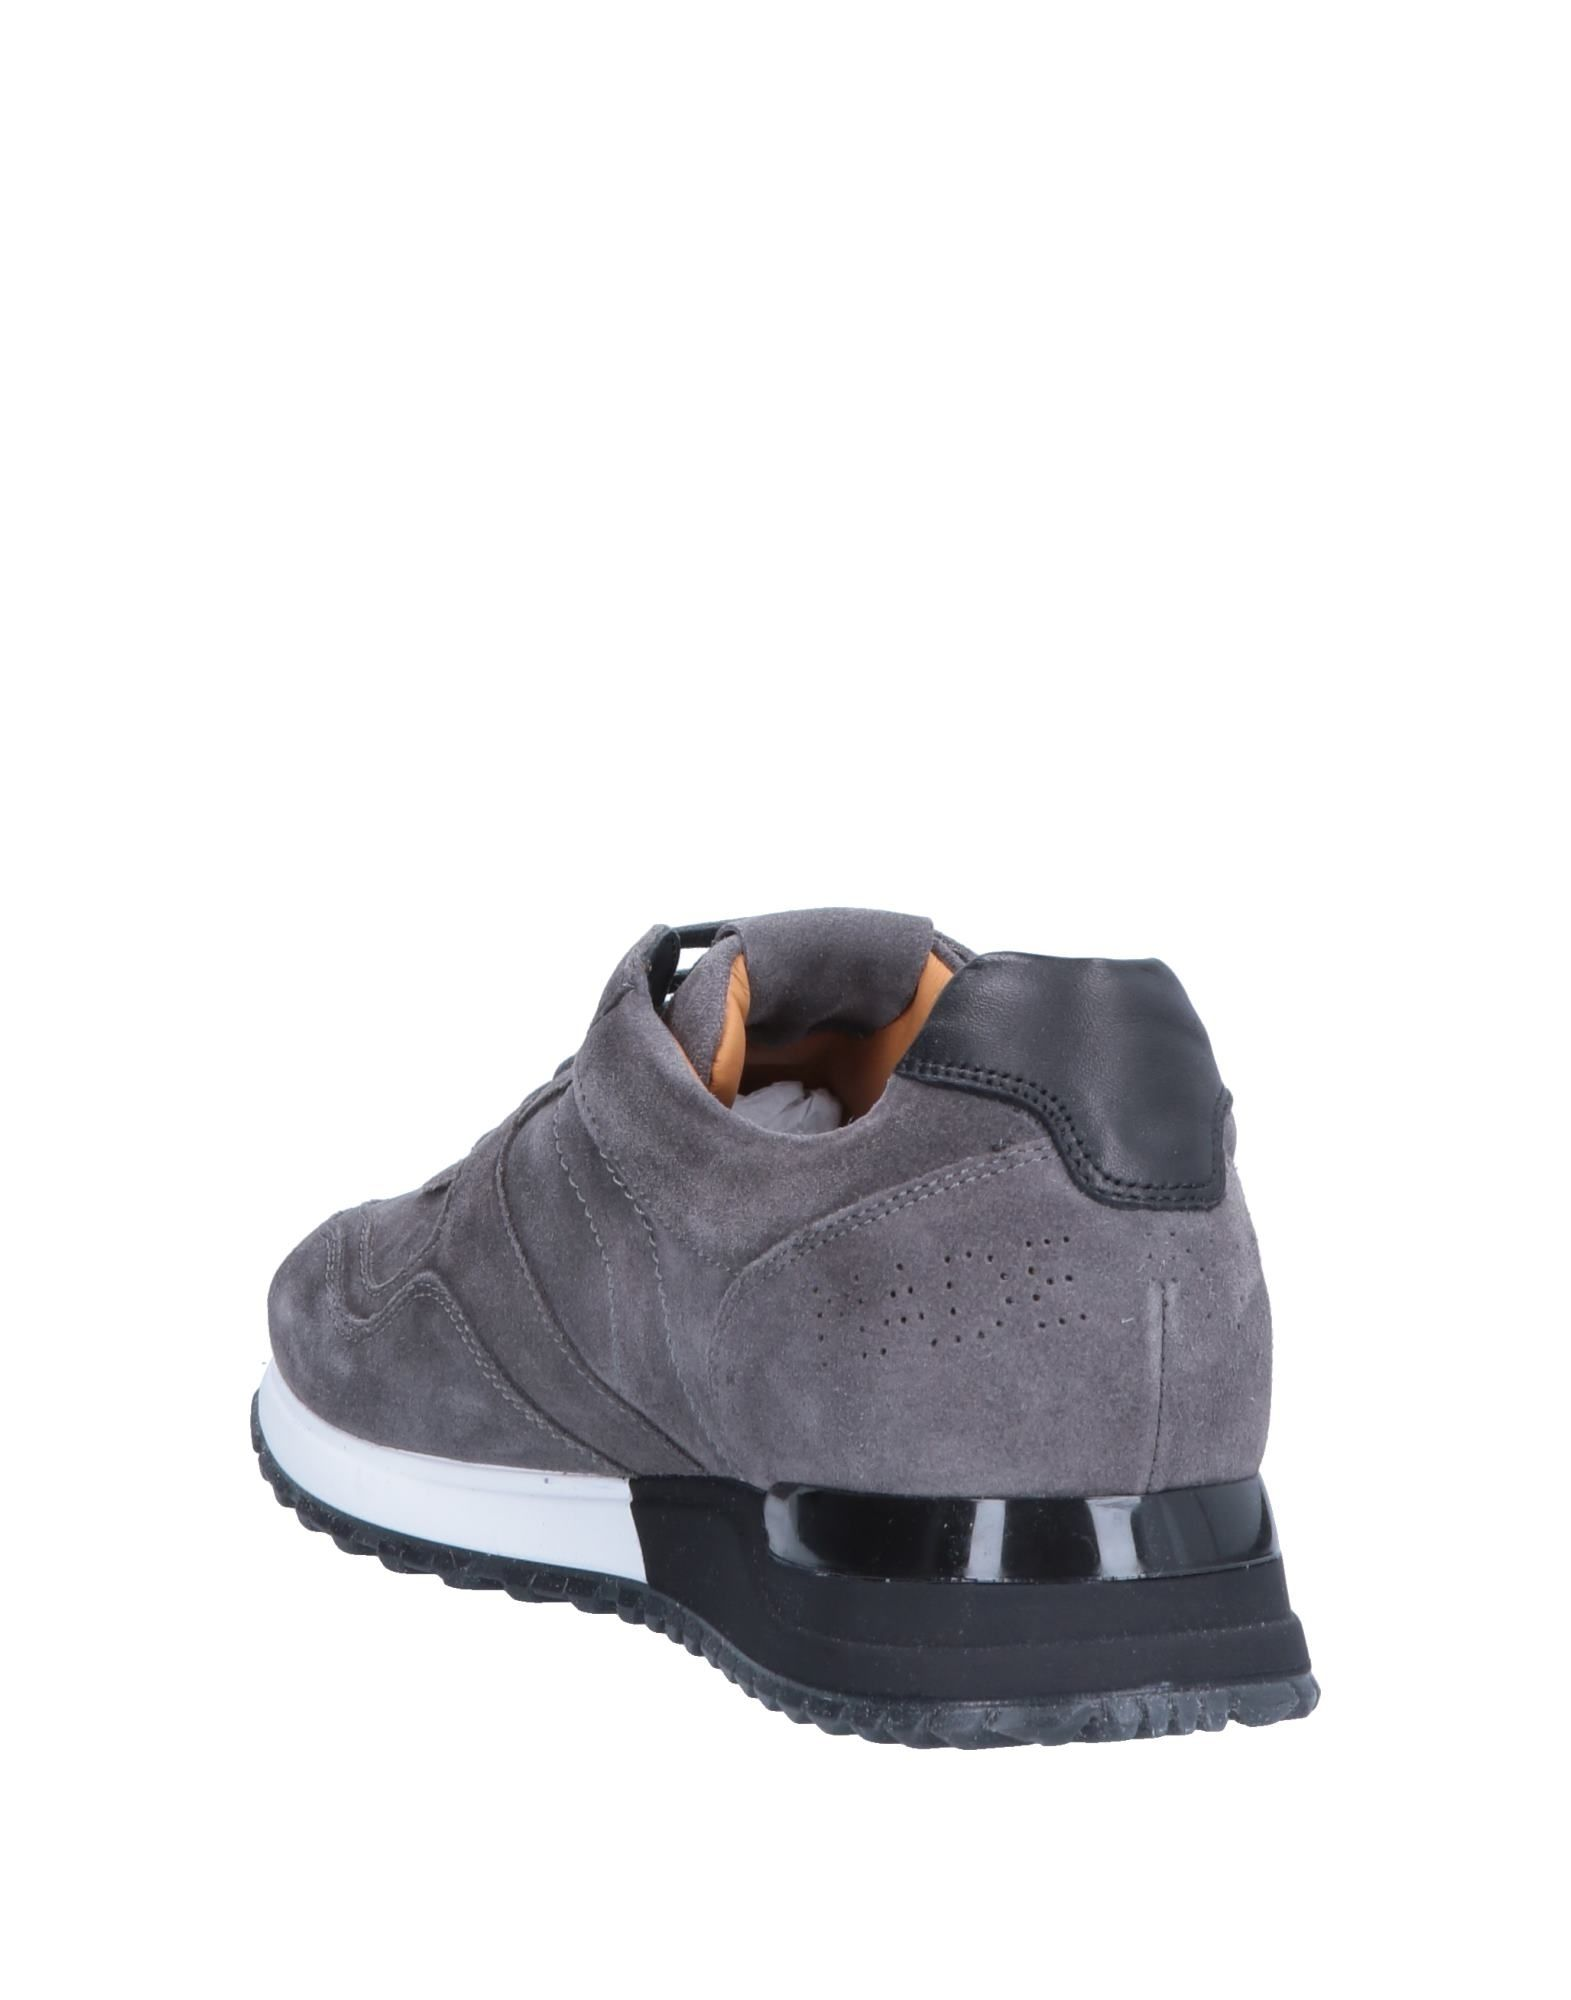 Andrea Morelli Sneakers - Men Andrea Morelli Sneakers Kingdom online on  United Kingdom Sneakers - 11560279OV 0735de